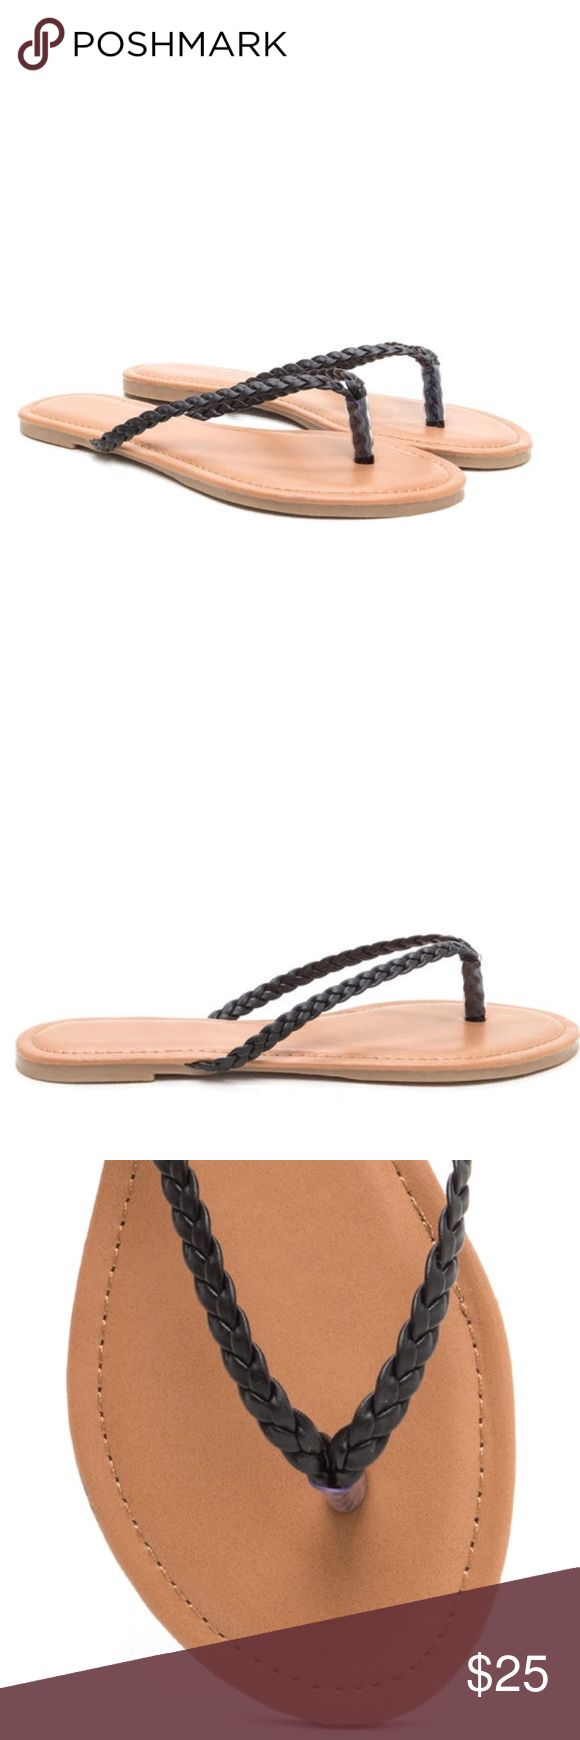 ✨Brand New✨ Faux Leather Braid Thong Sandal: Black ✨Brand New✨ Vegan leather flip-flops feature skinny braided straps and a ridged sole. ✨Brand name used for exposure: bought in a boutique in NYC brand: Misbehave.  Size: 8 in Black / True to size Man made materials Made in China Zara Shoes Sandals